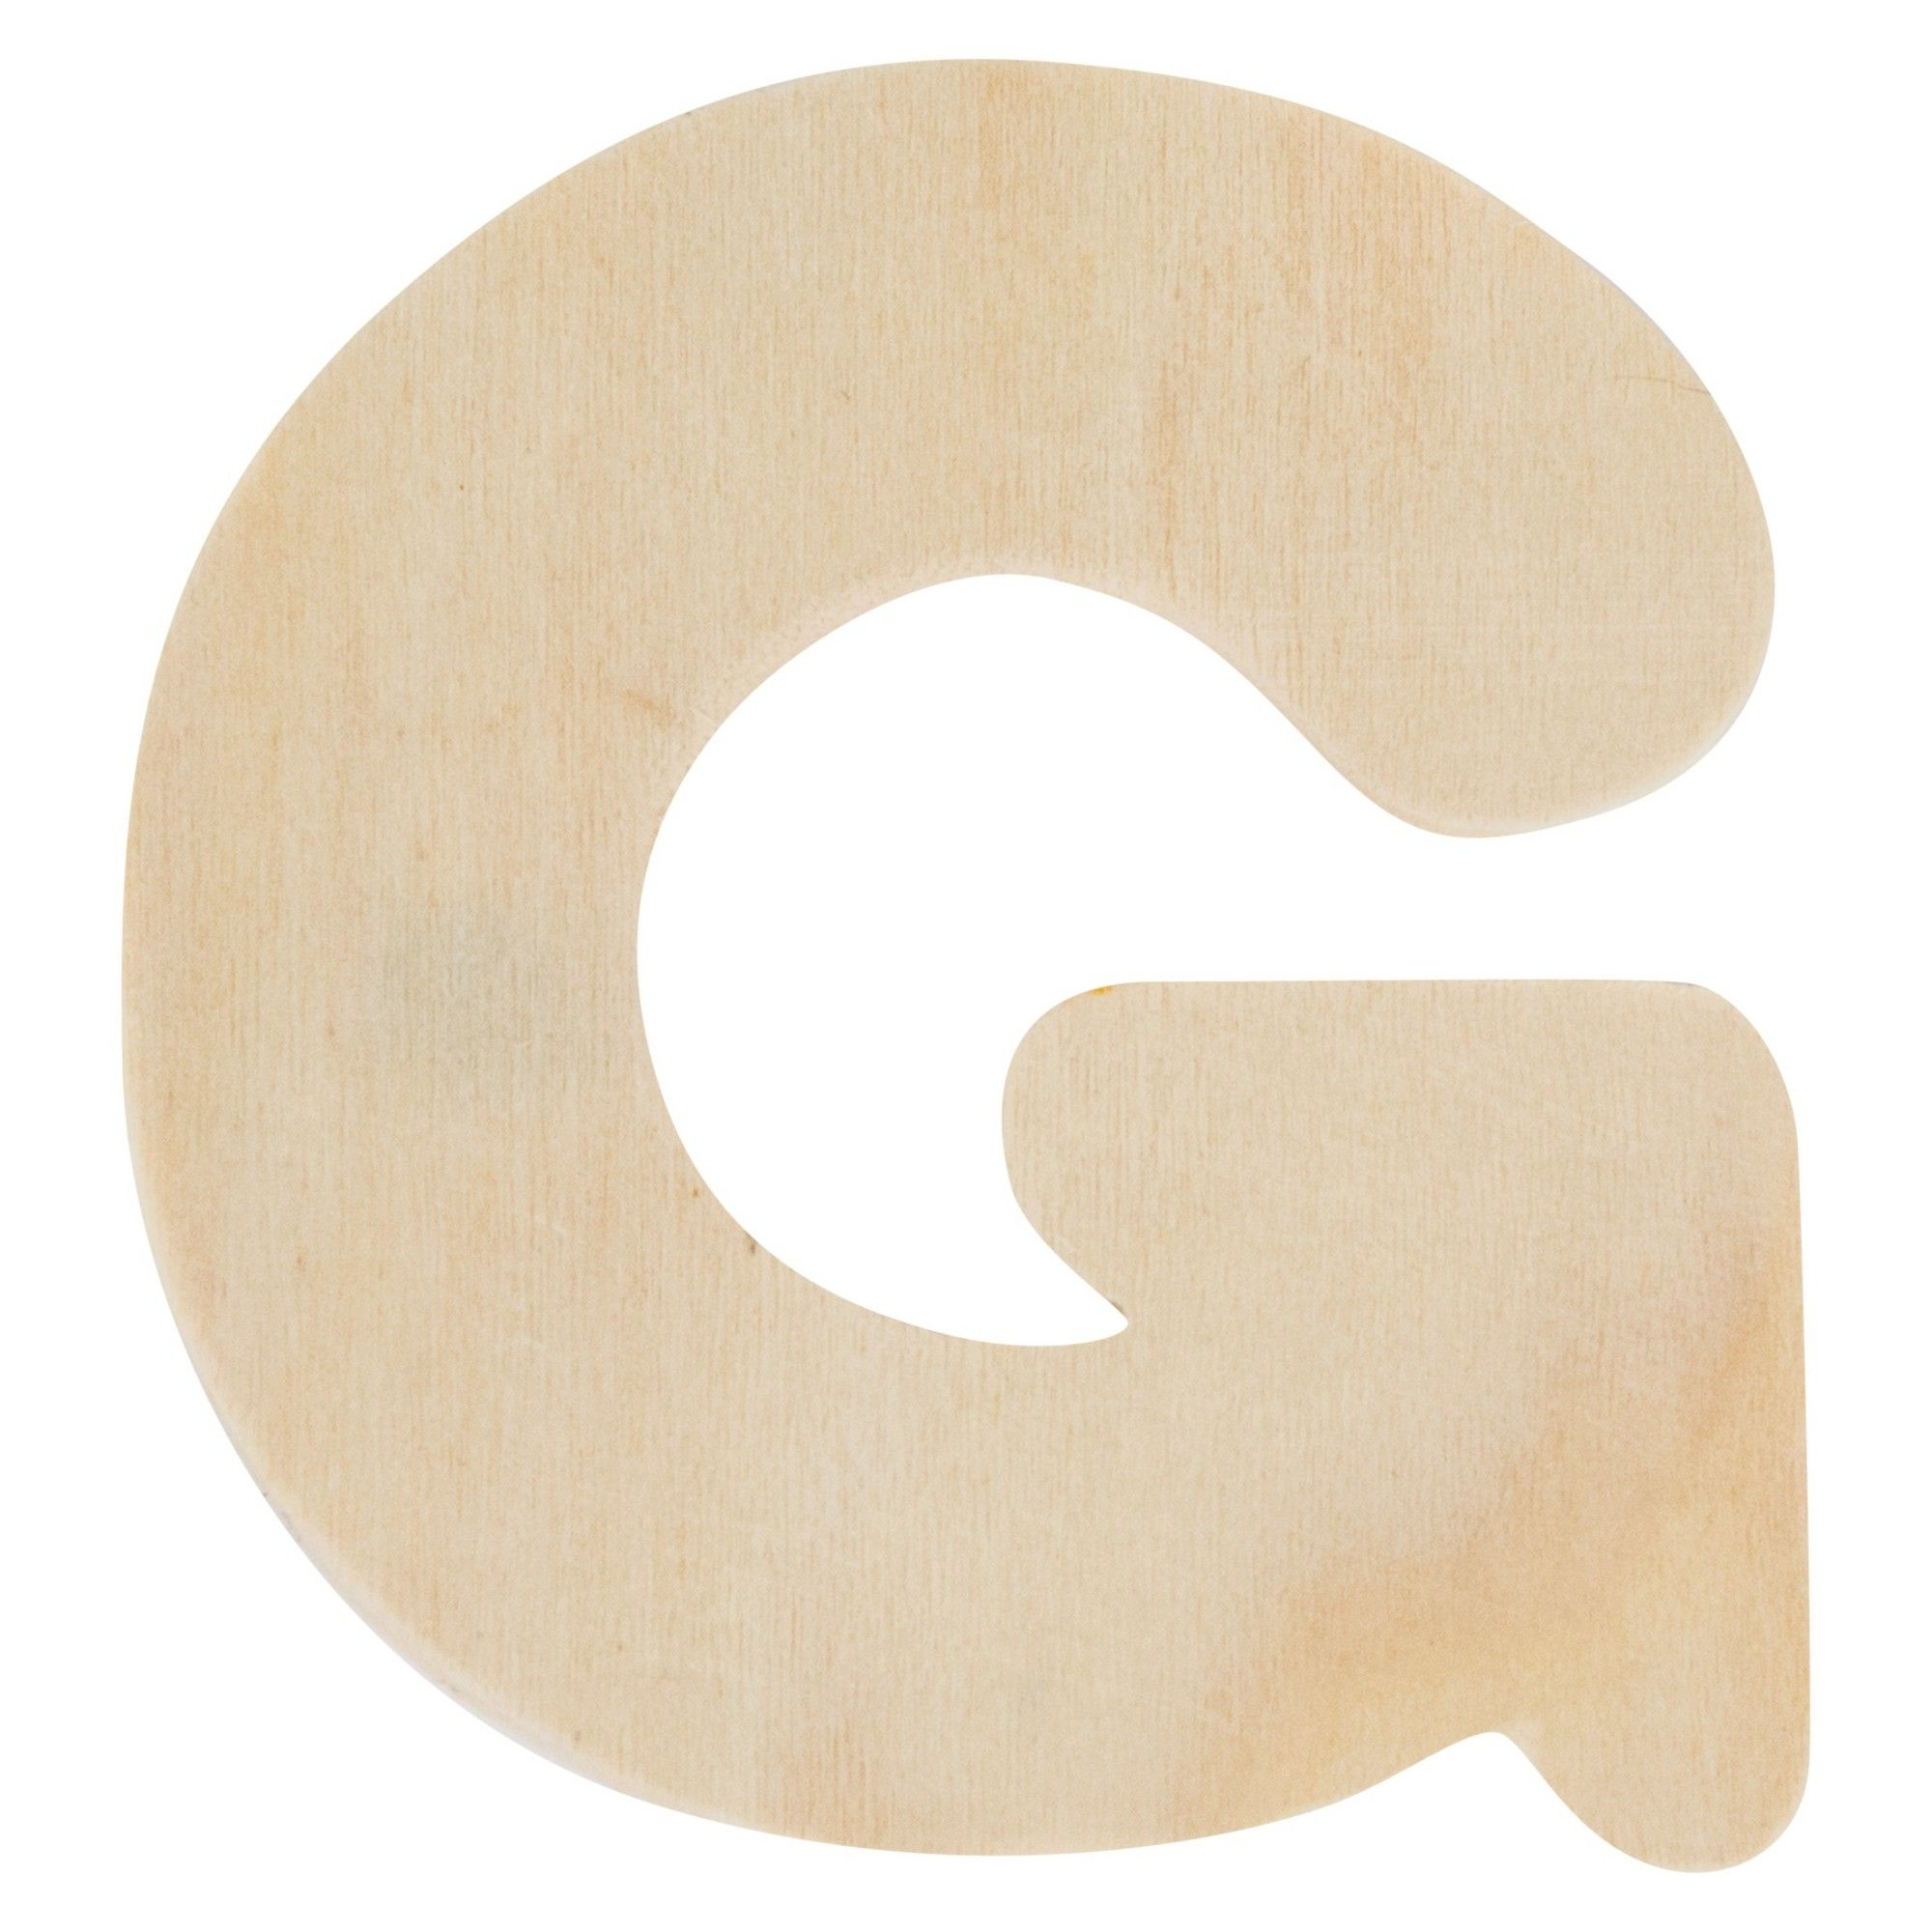 Creatify Wooden Letter G 3 X Brown